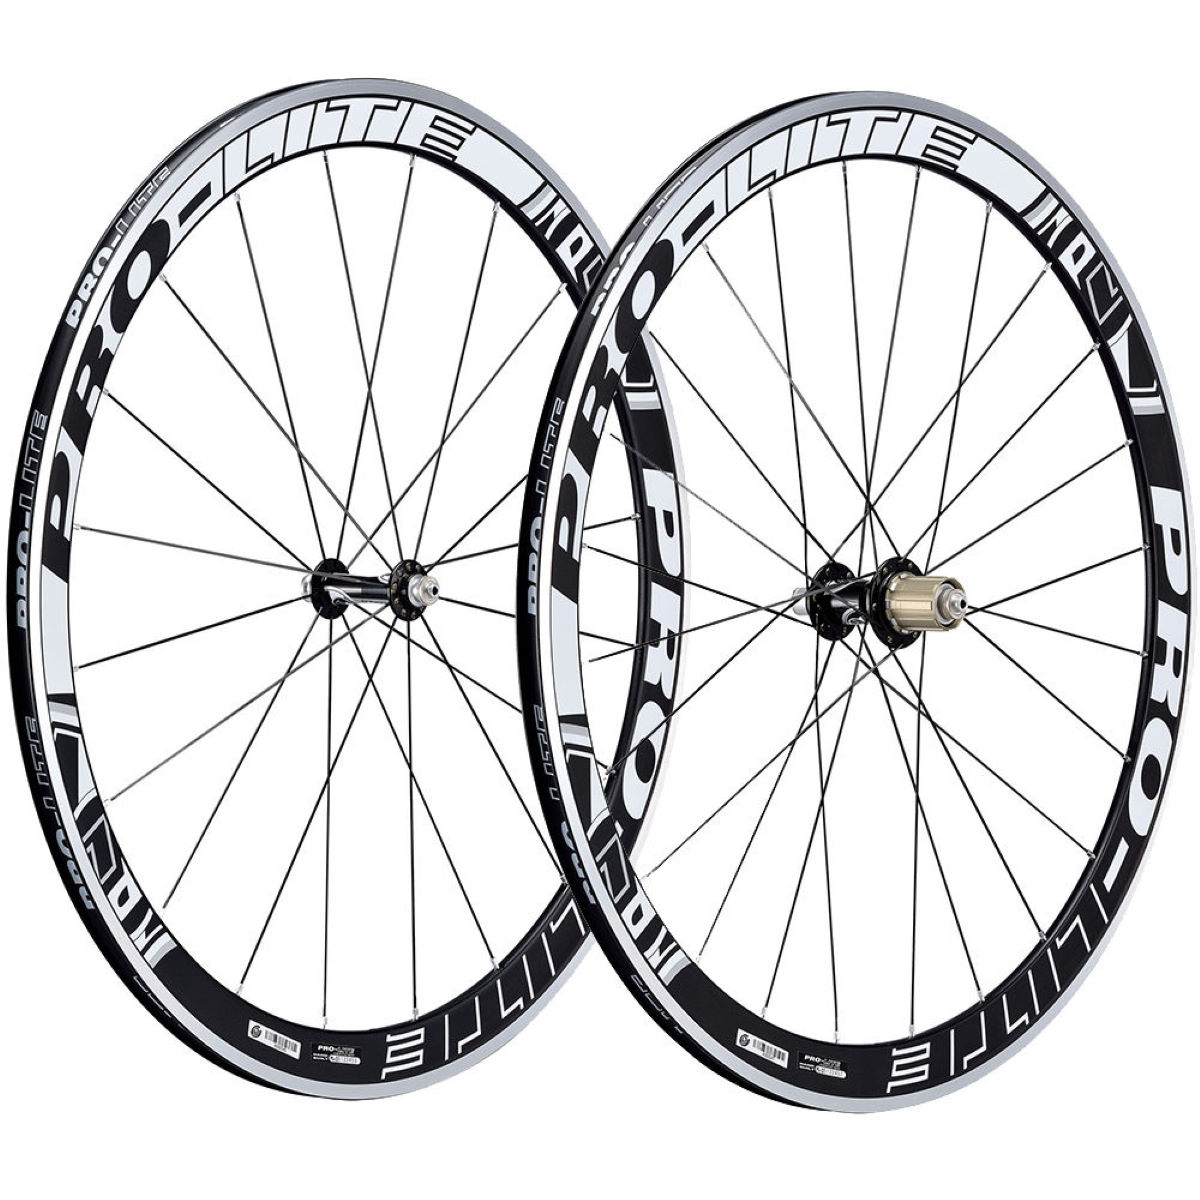 Pro Lite Bracciano A42 Alloy Clincher Wheelset   Performance Wheels